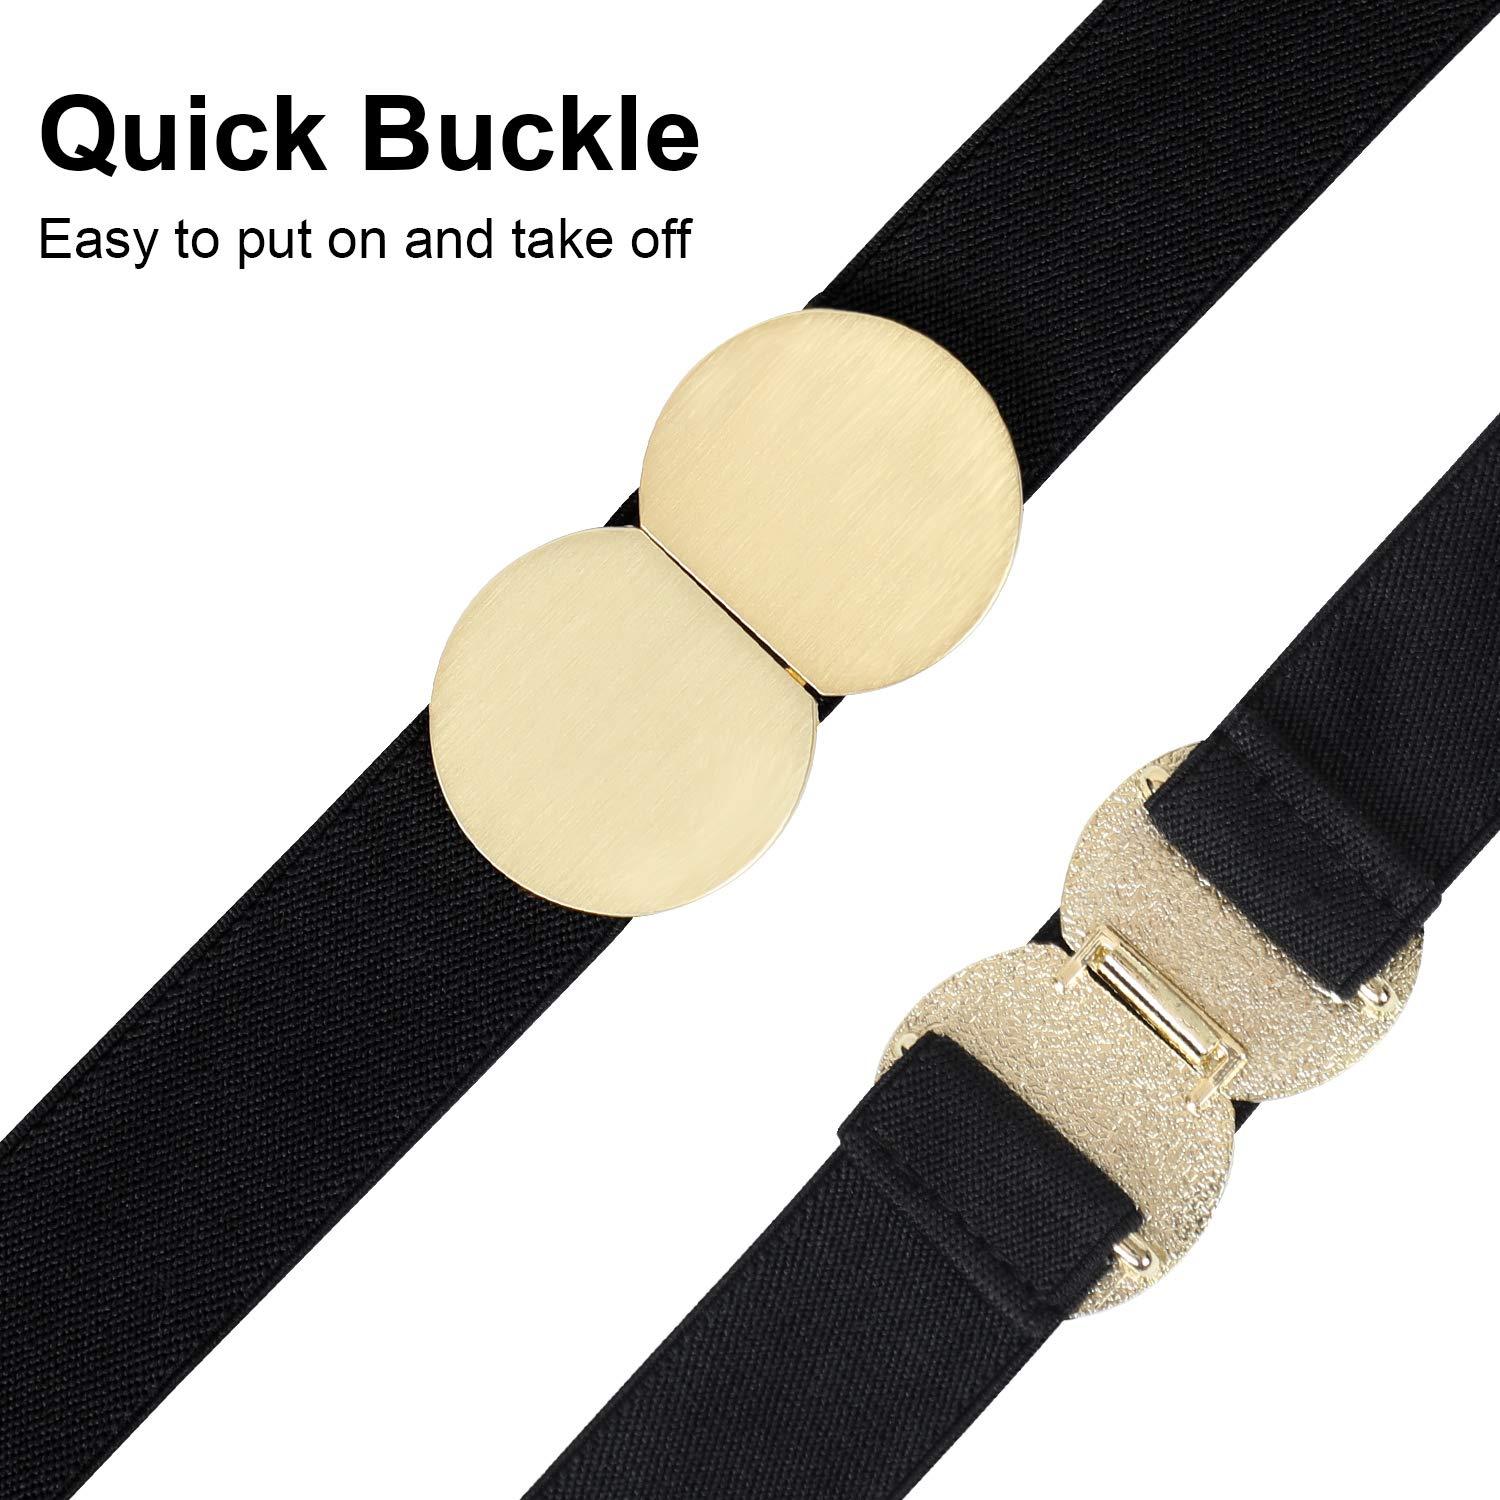 Elastic Waist Belts for Women - BALTEUS Fashion Stretch Belt with Gold Metal Quick Buckle Ladies Dresses Jeans Belt (Black, Fit Waist Size 33\